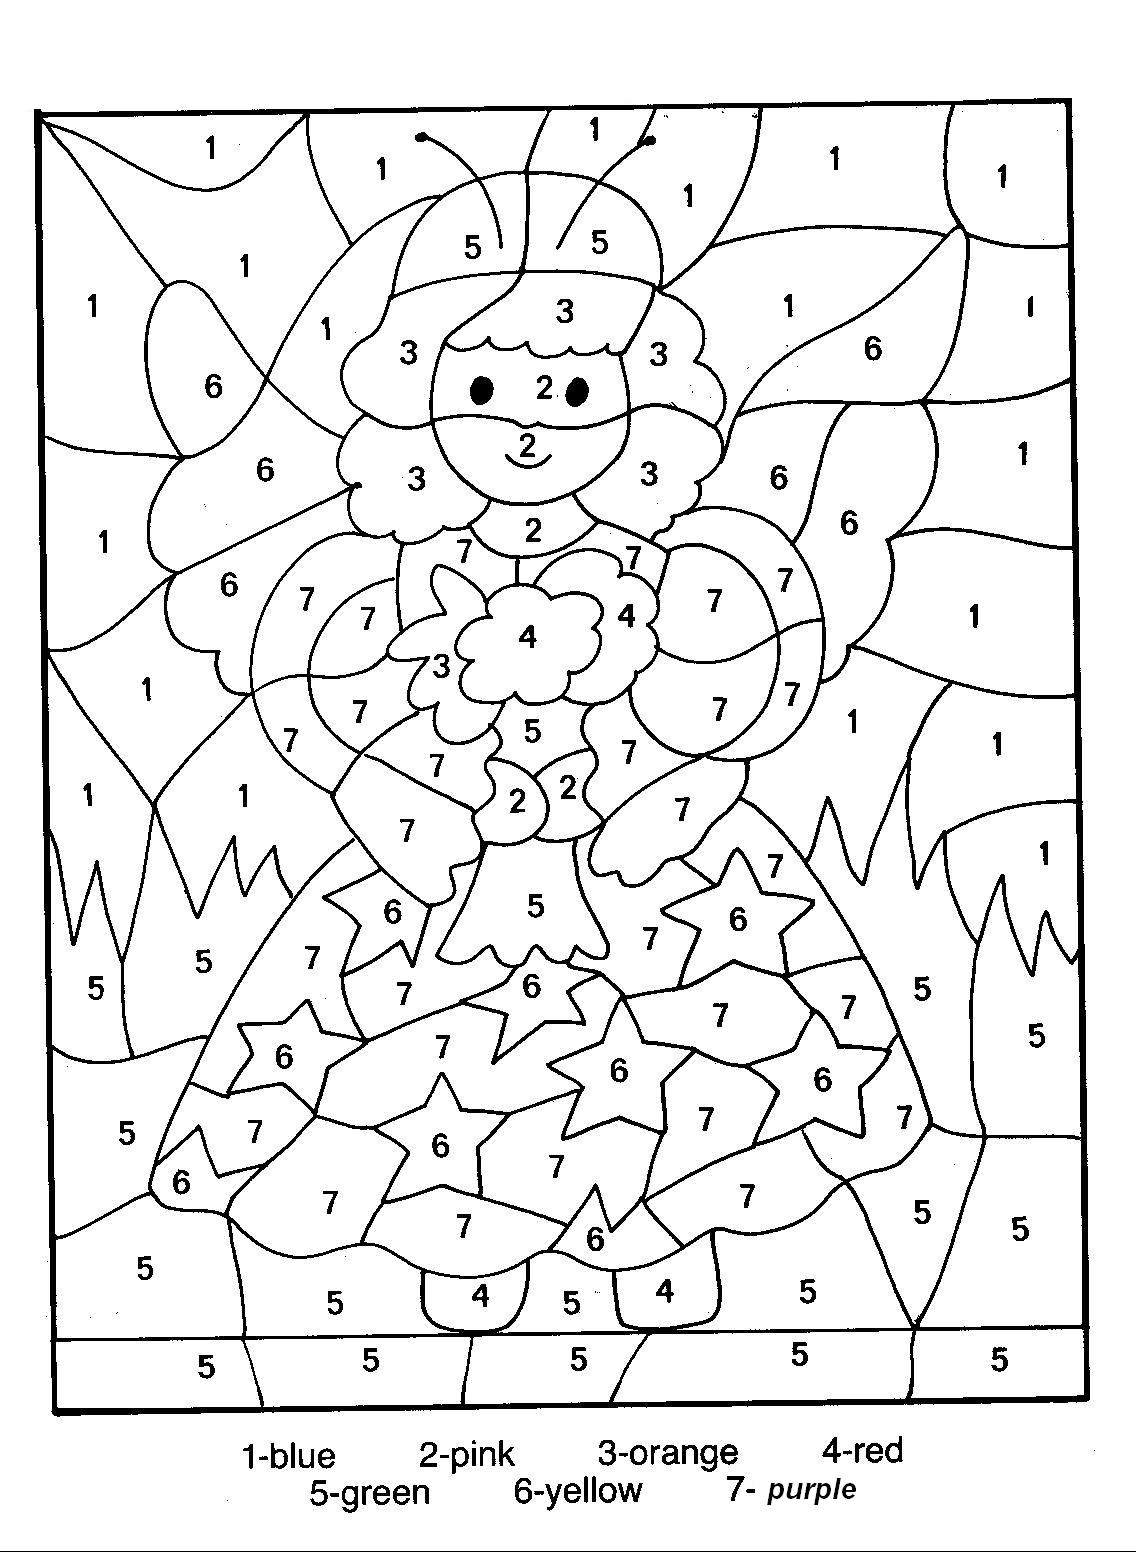 Number Coloring Pages (13) - Coloring Kids